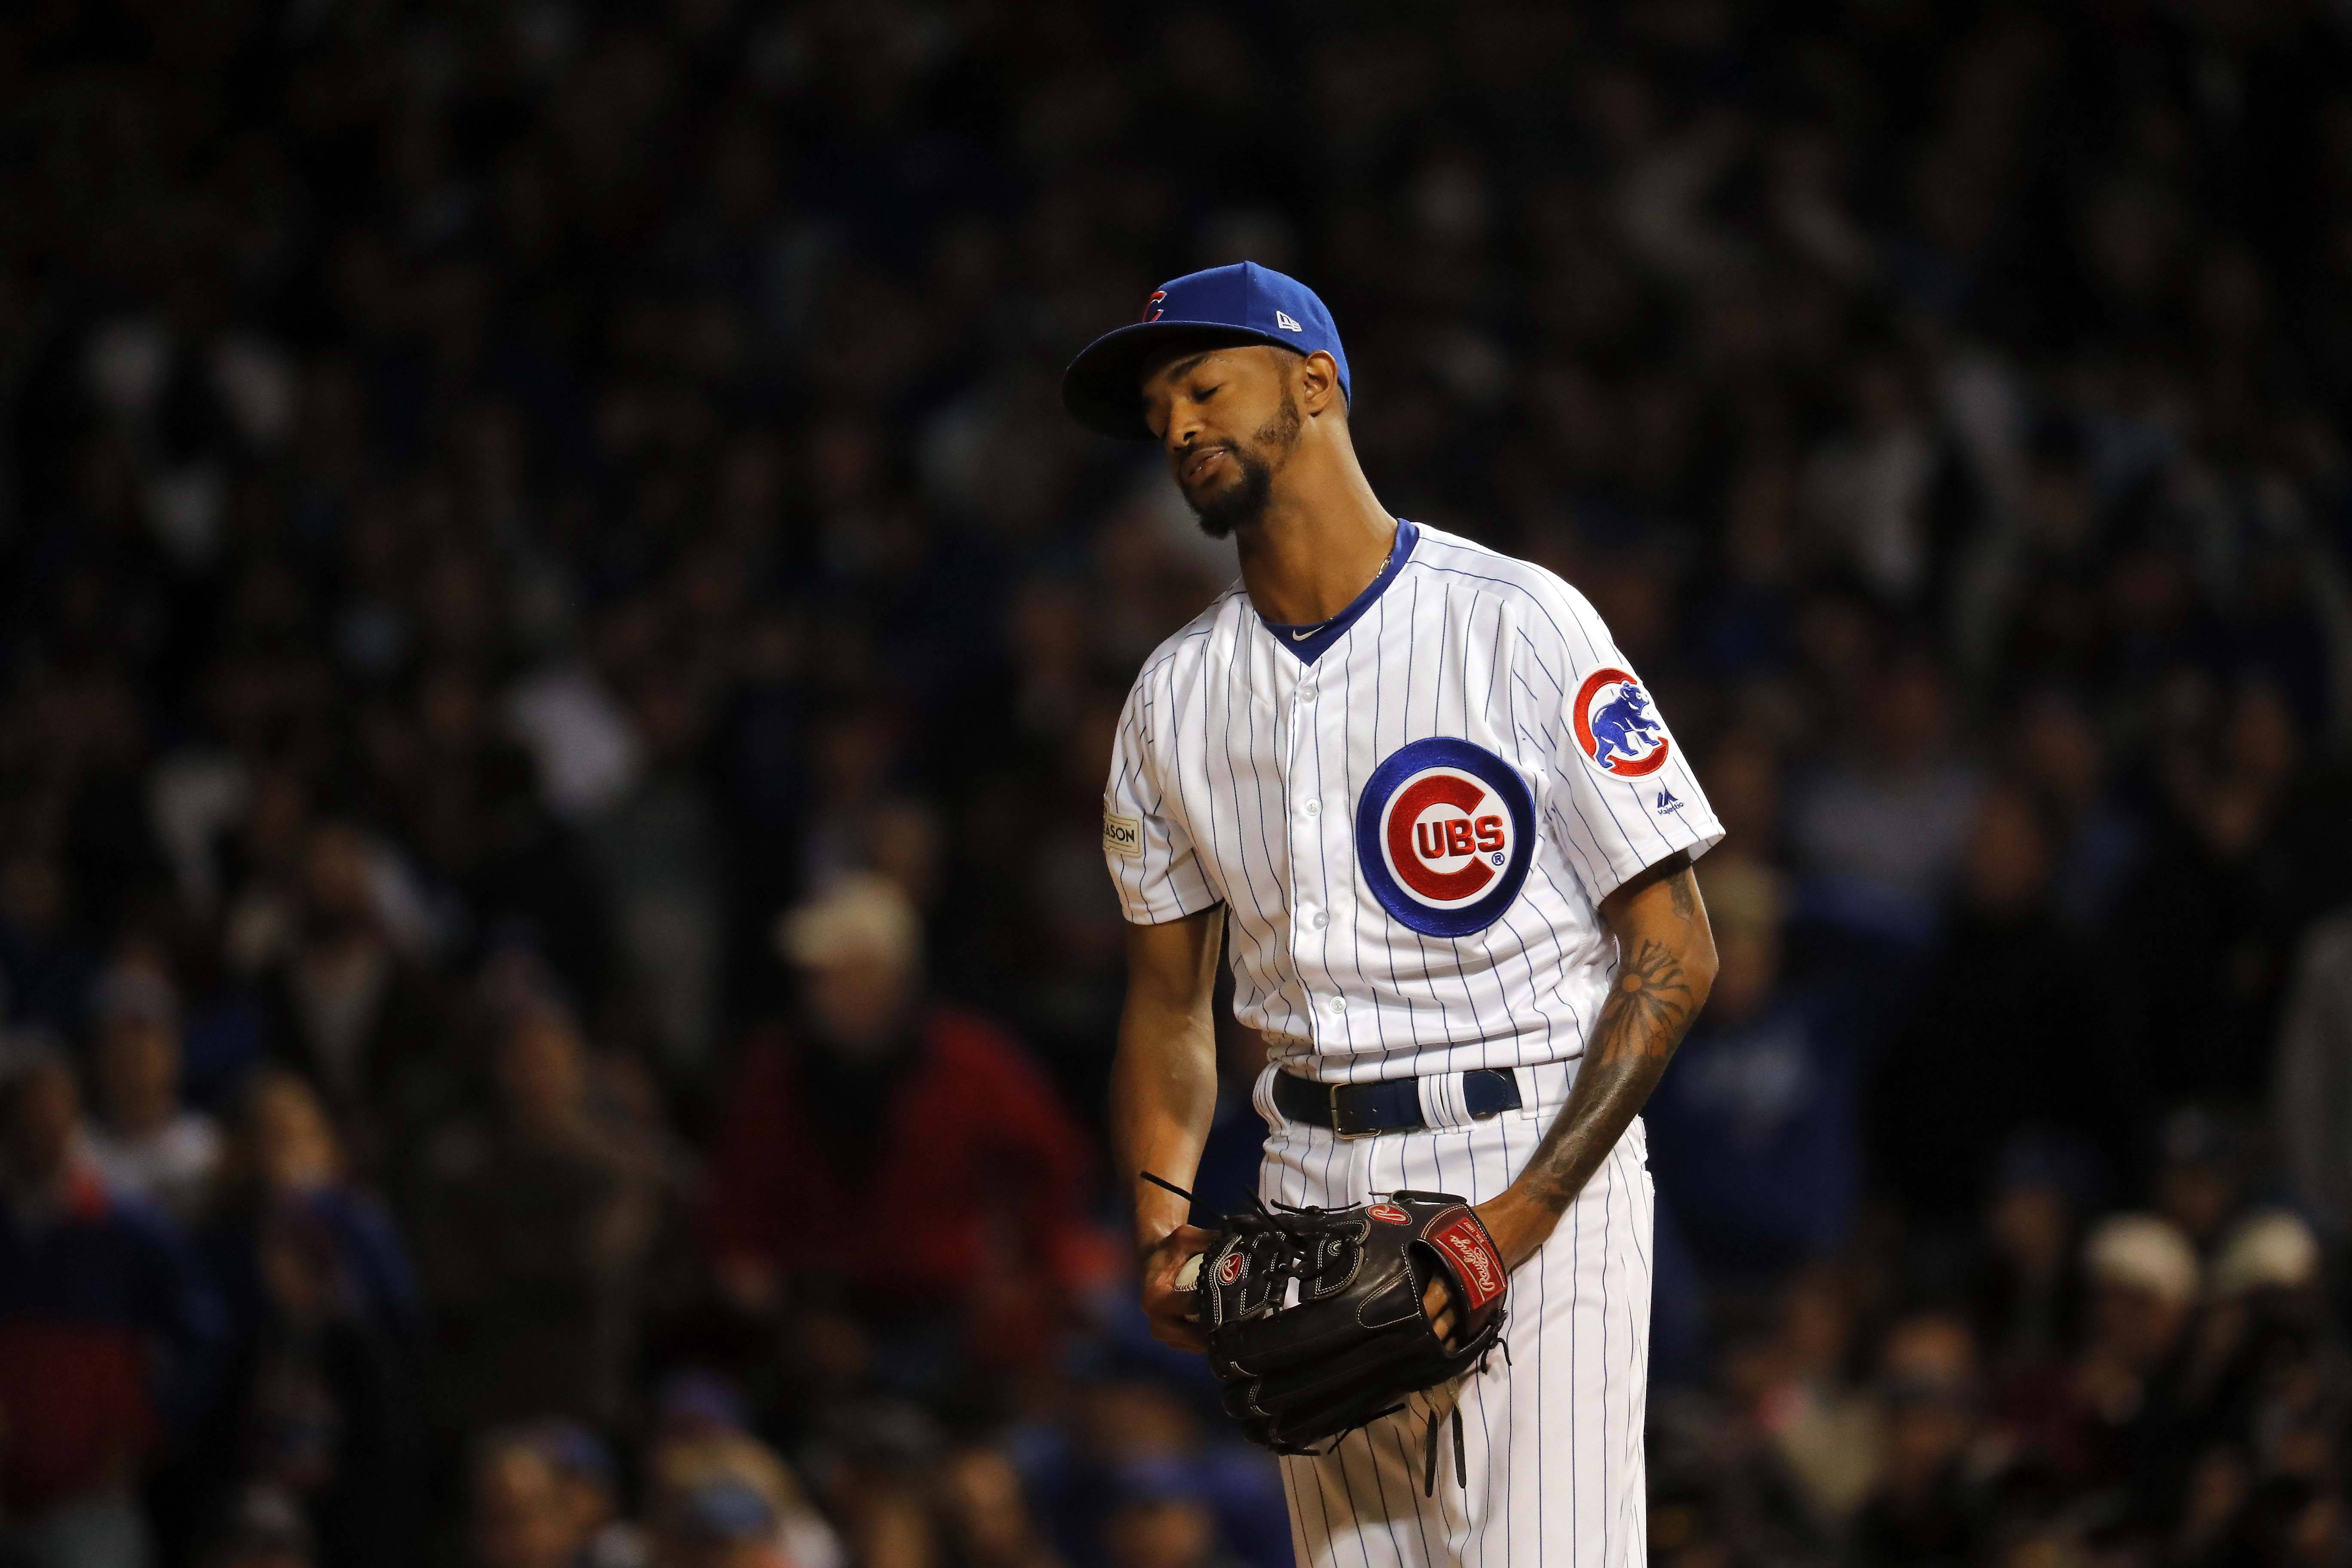 Cubs bats stay quiet, Dodgers lead NLCS 3-0